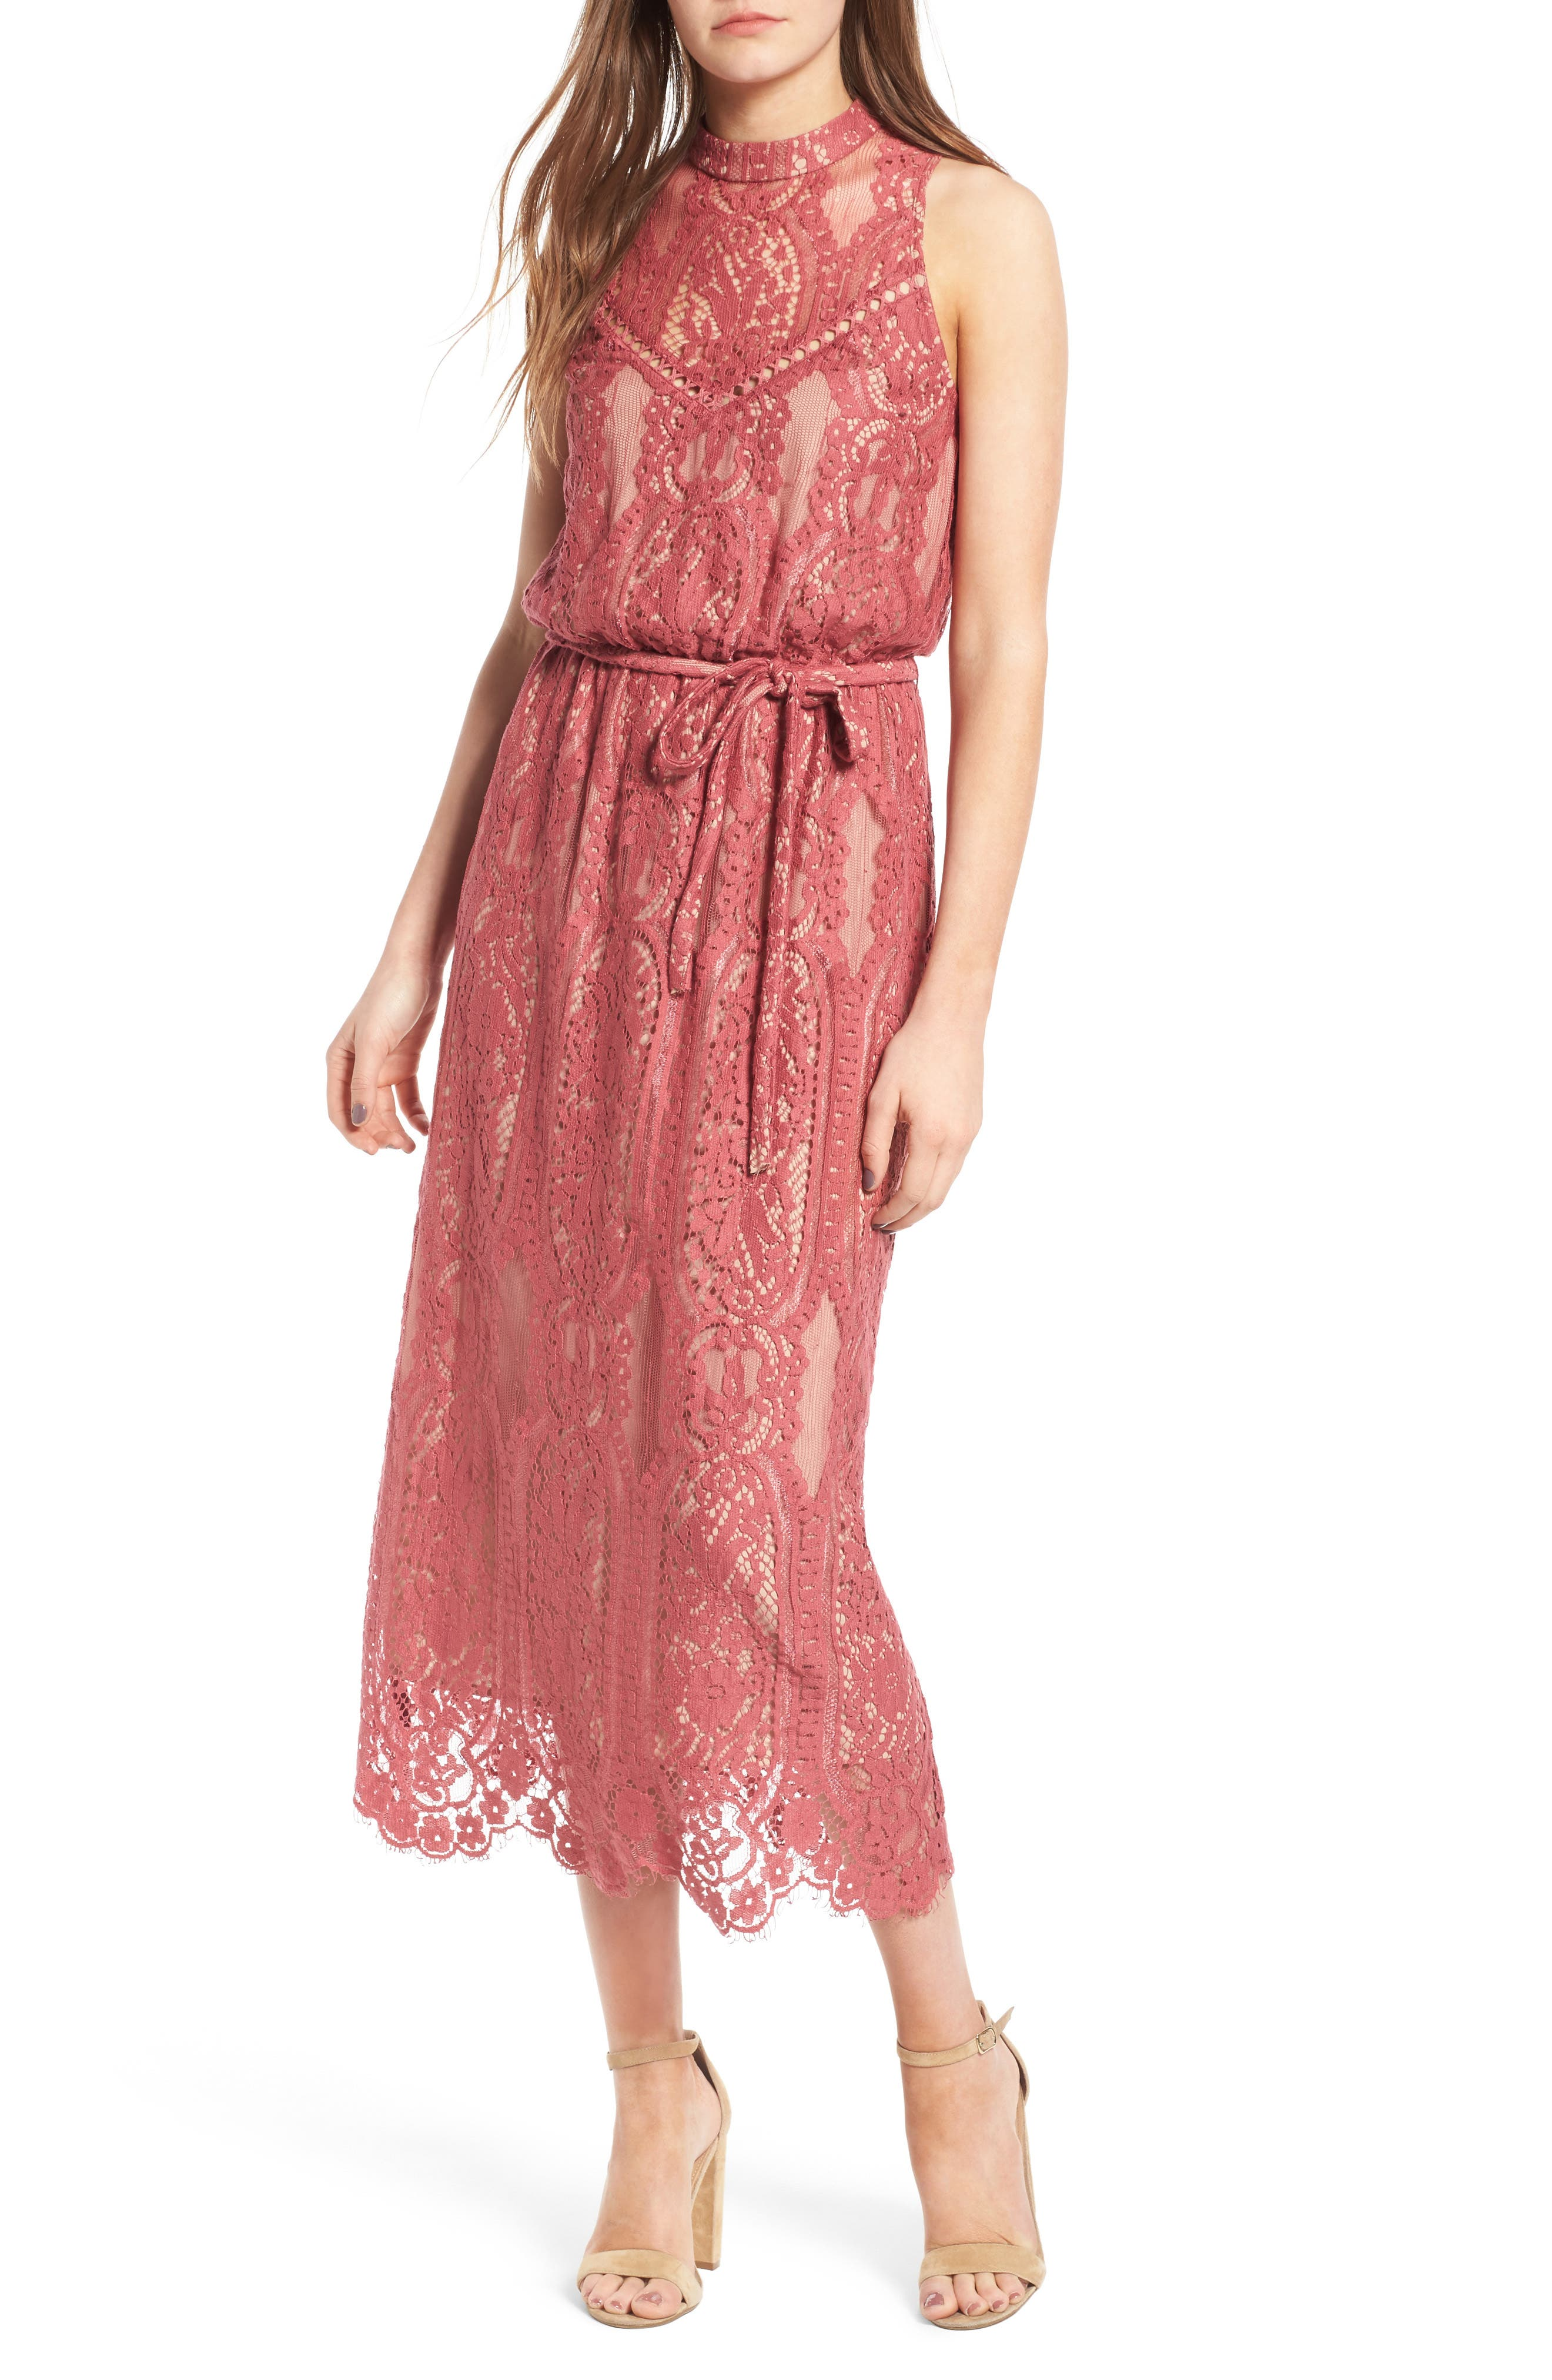 WAYF 'Portrait' Lace Midi Dress